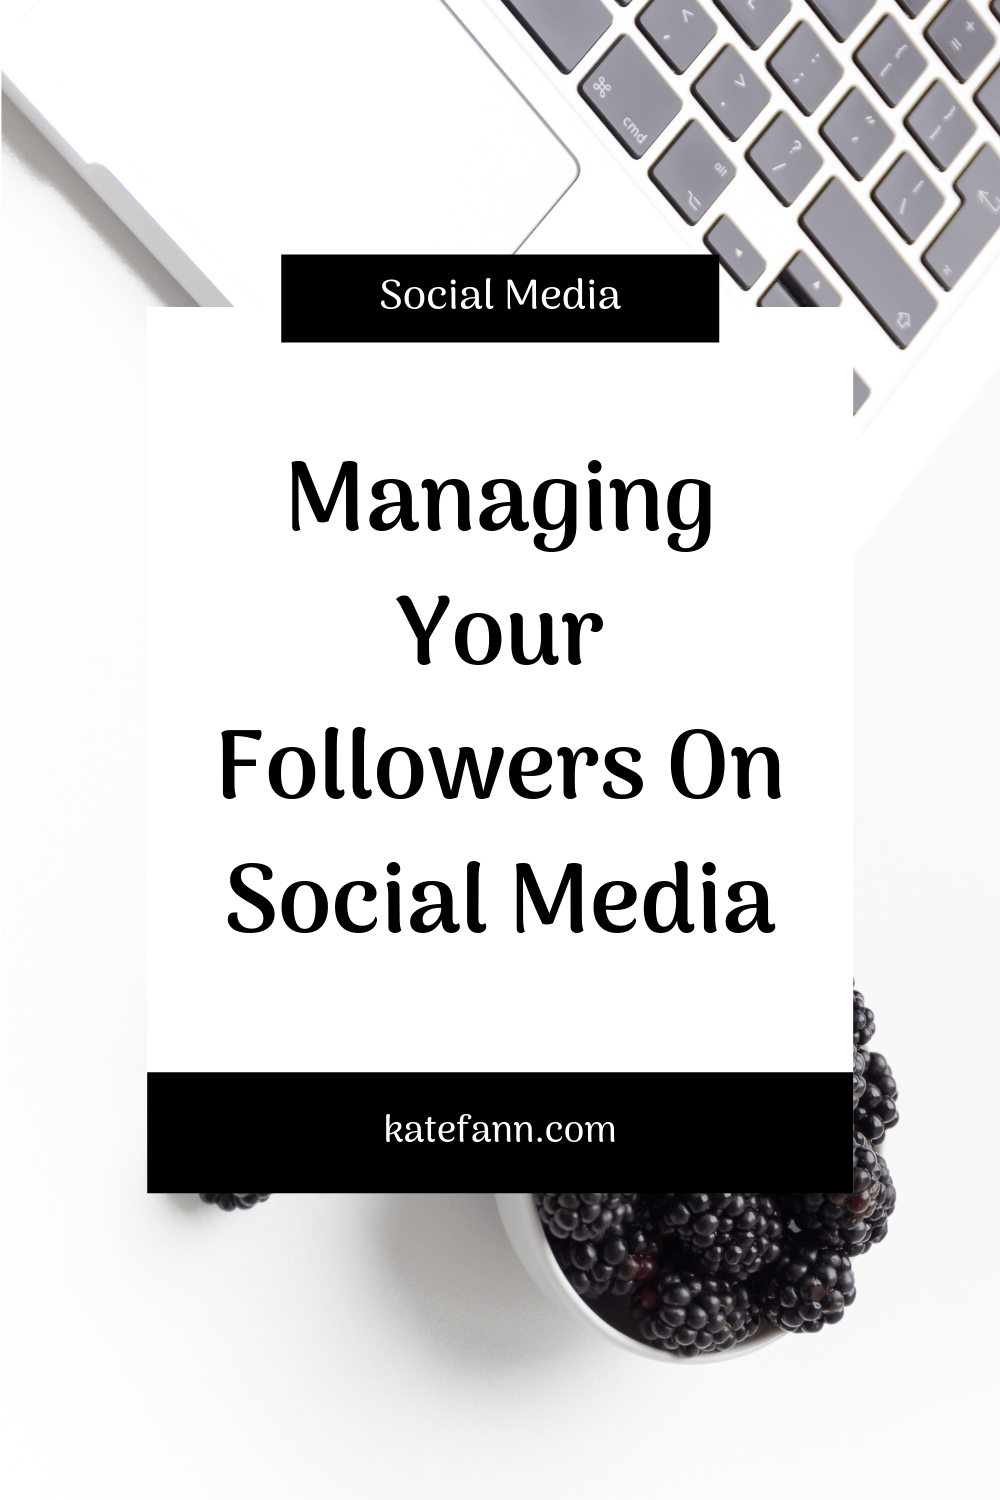 Managing Your Followers On Social Media